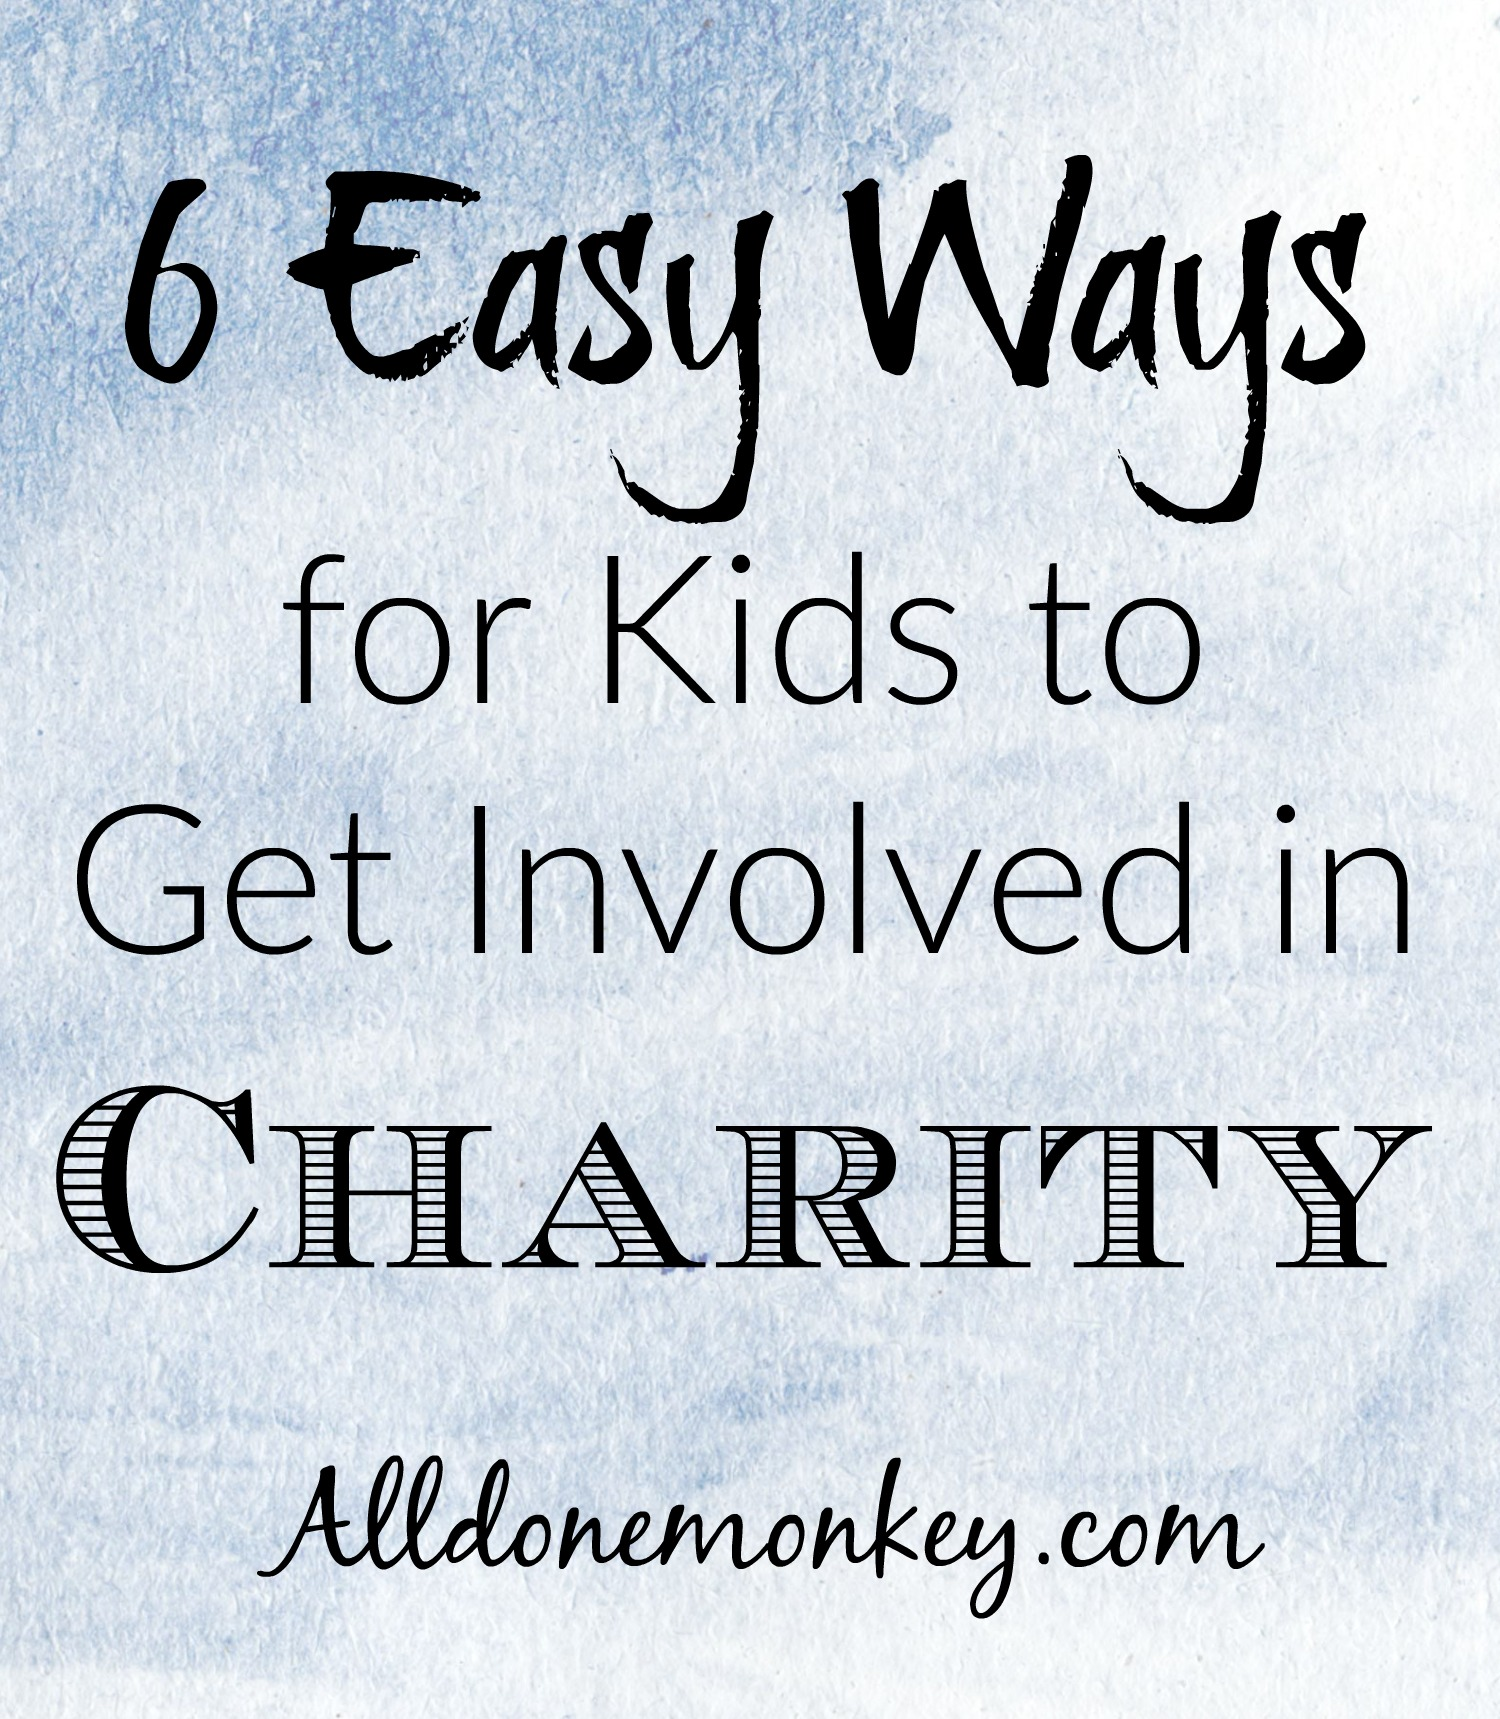 Six Easy Ways for Kids to Get Involved in Charity | Alldonemonkey.com